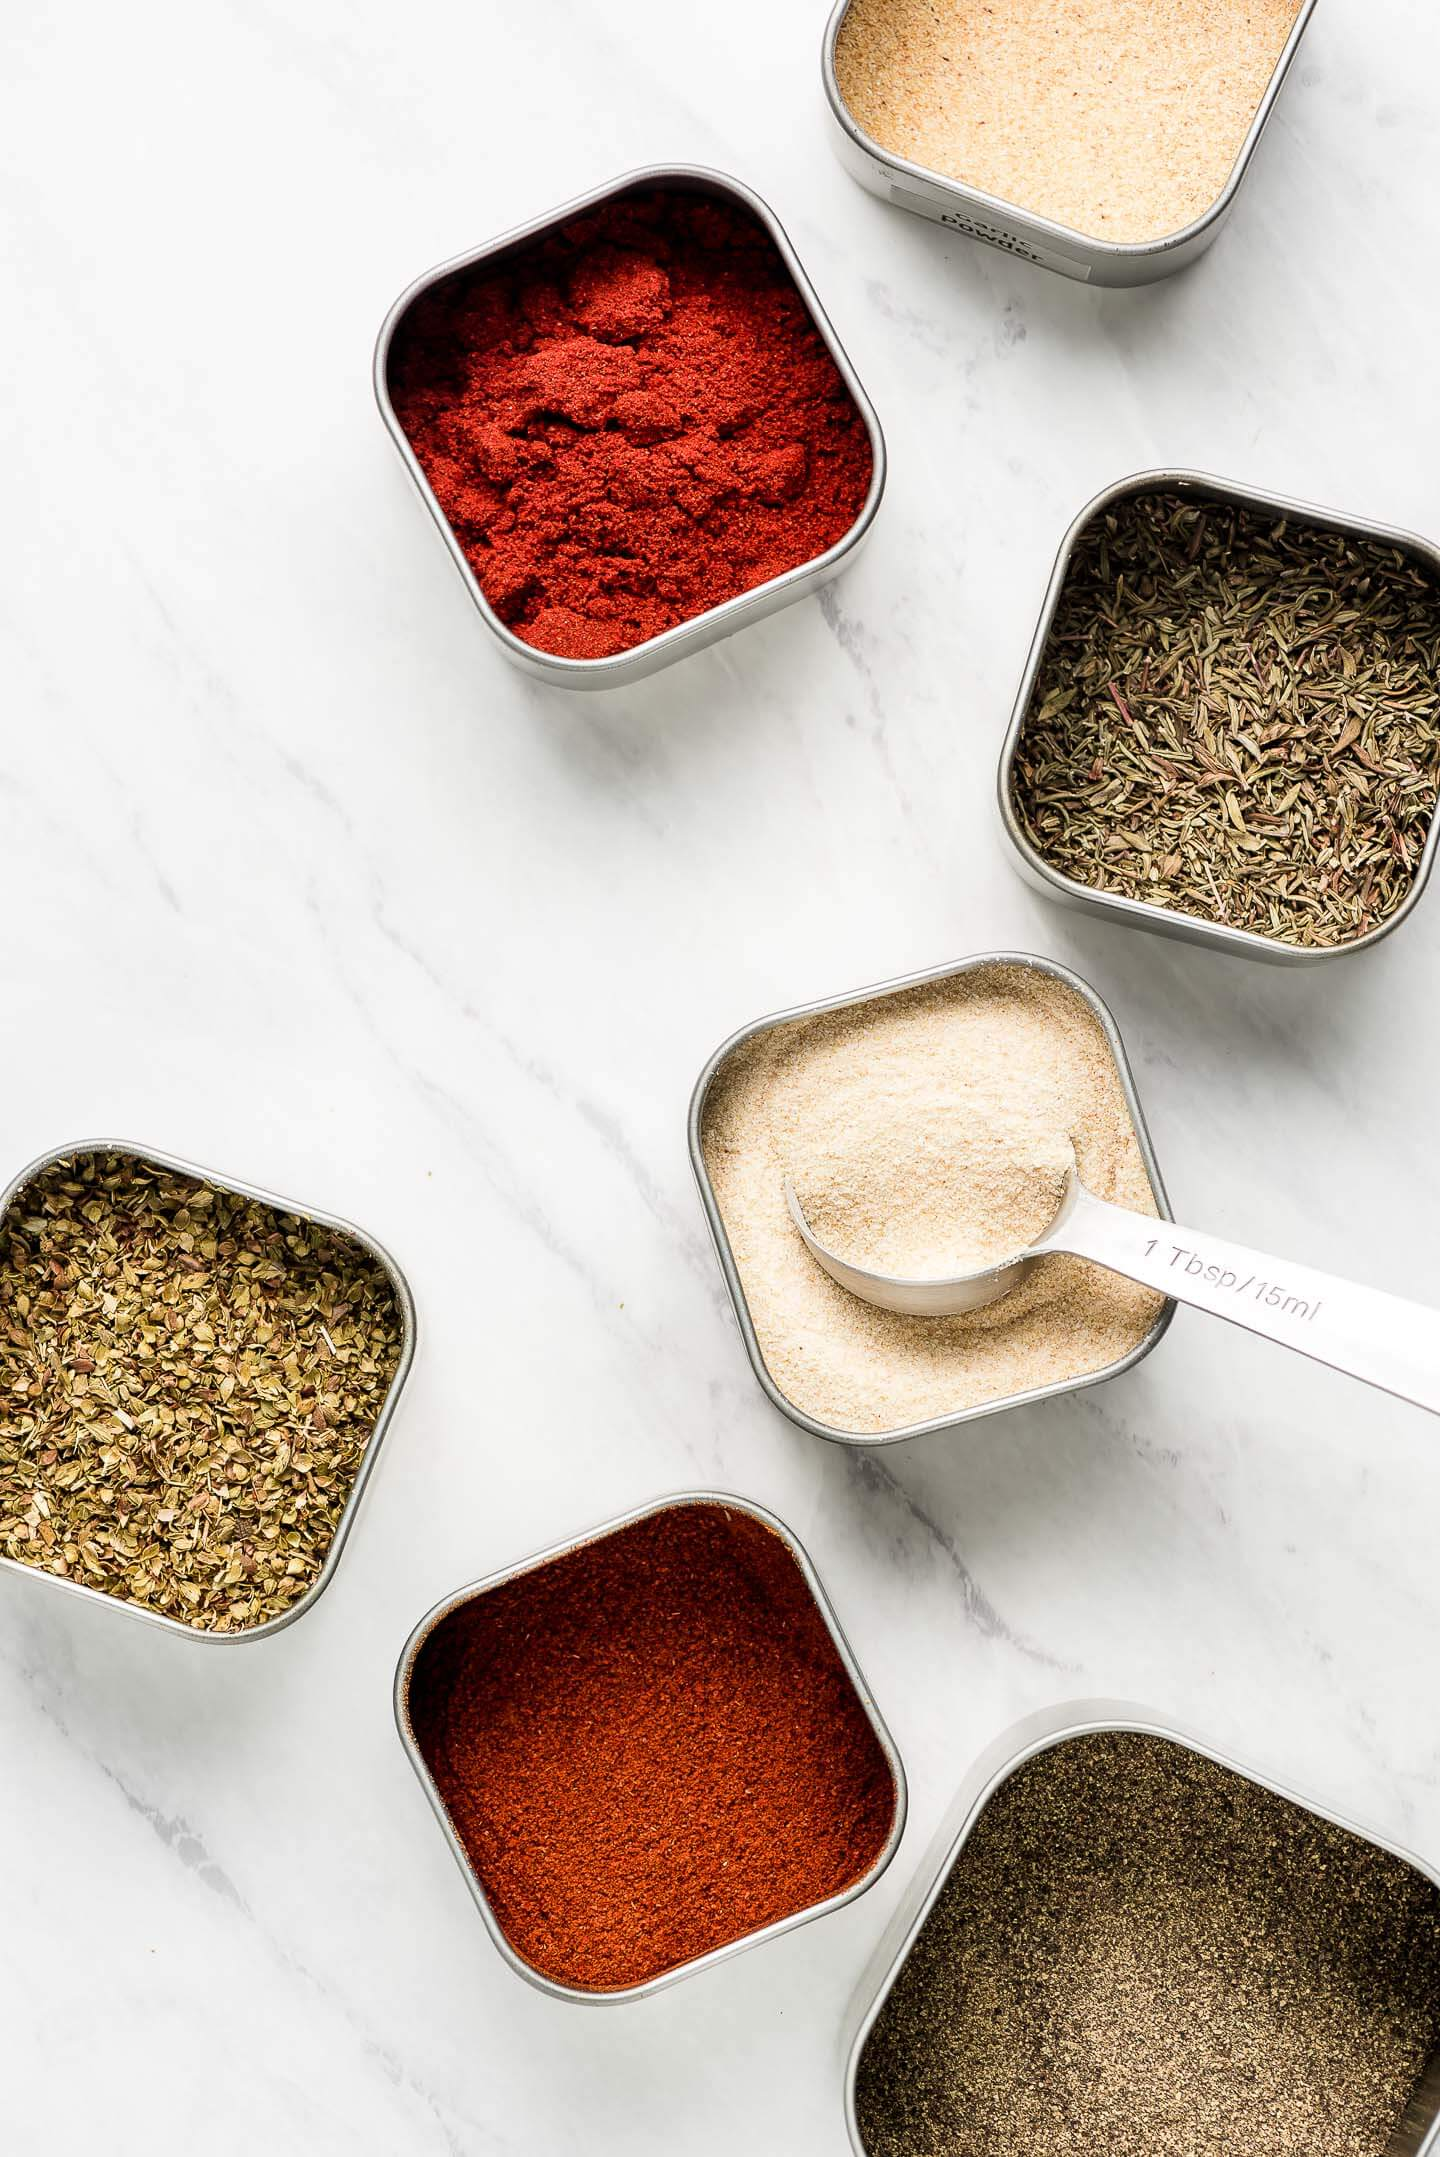 Square tins of herbs and spices on a marble surface.